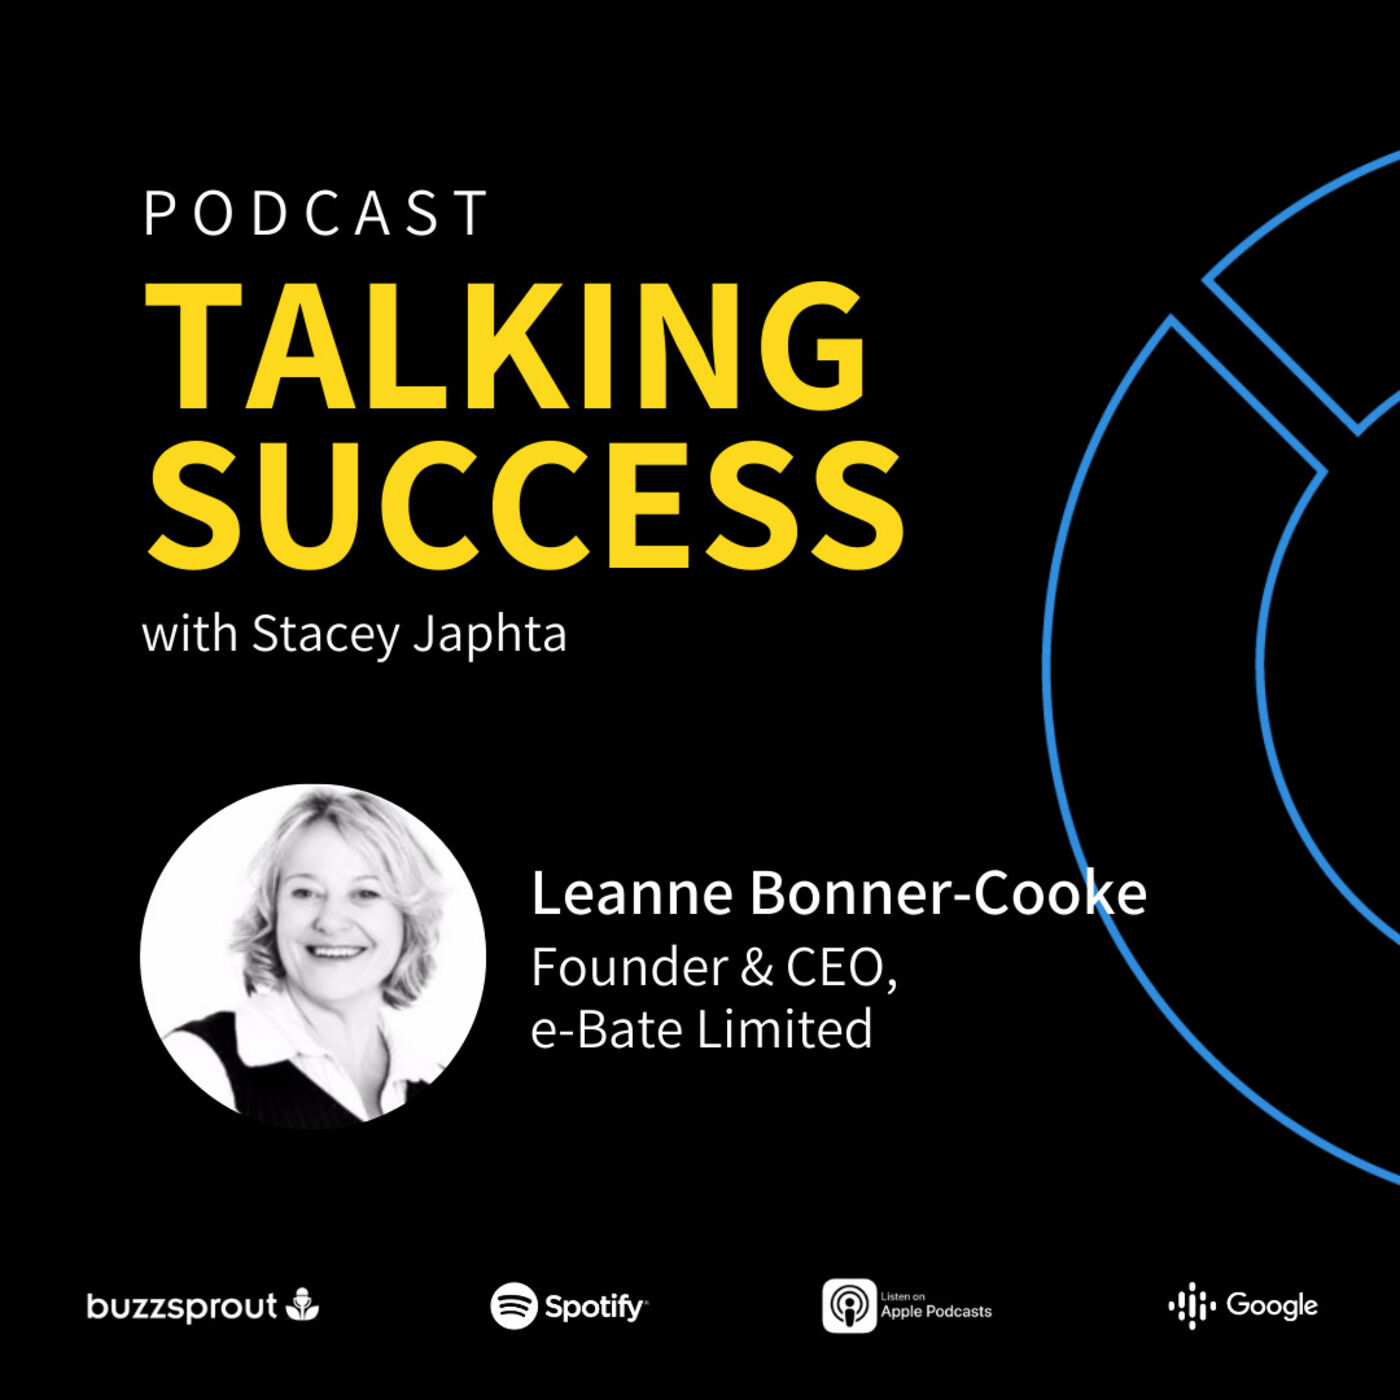 Leanne Bonner-Cooke, CEO & Founder of e-Bate Limited - All things FinTech, how to get investors, and tips for digitizing your business